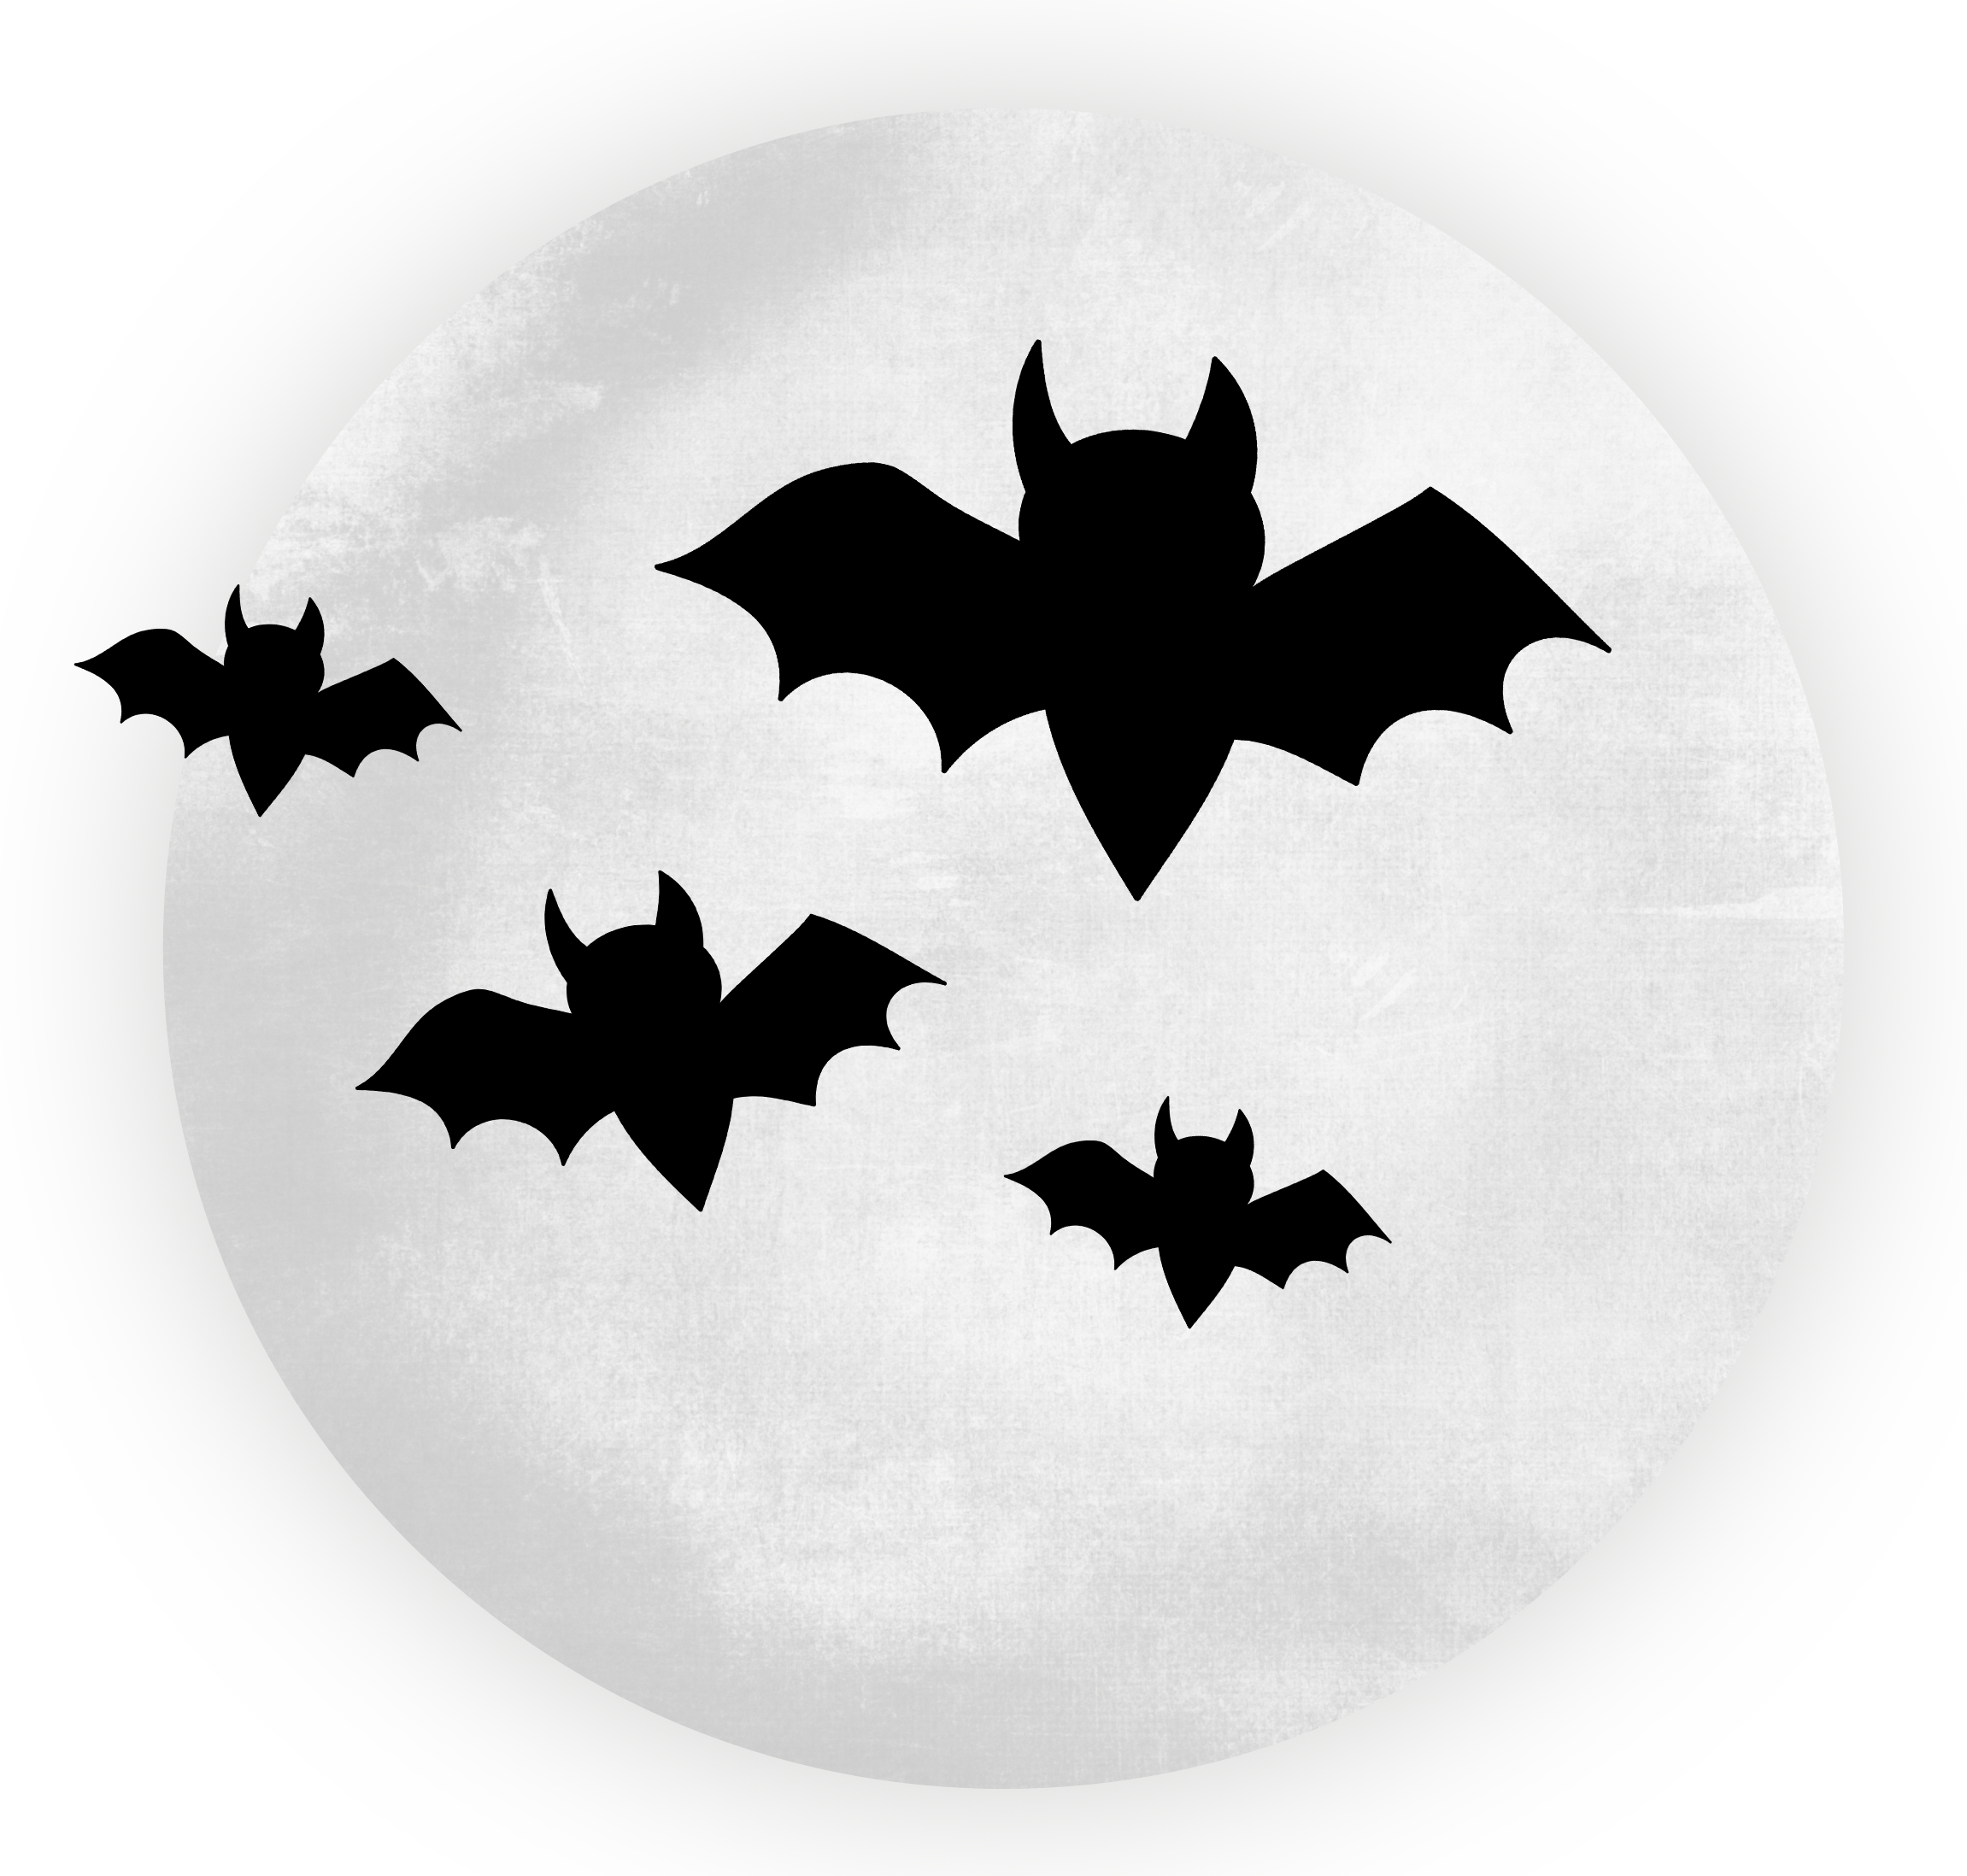 Clipart halloween backdrop. Large transparent moon with